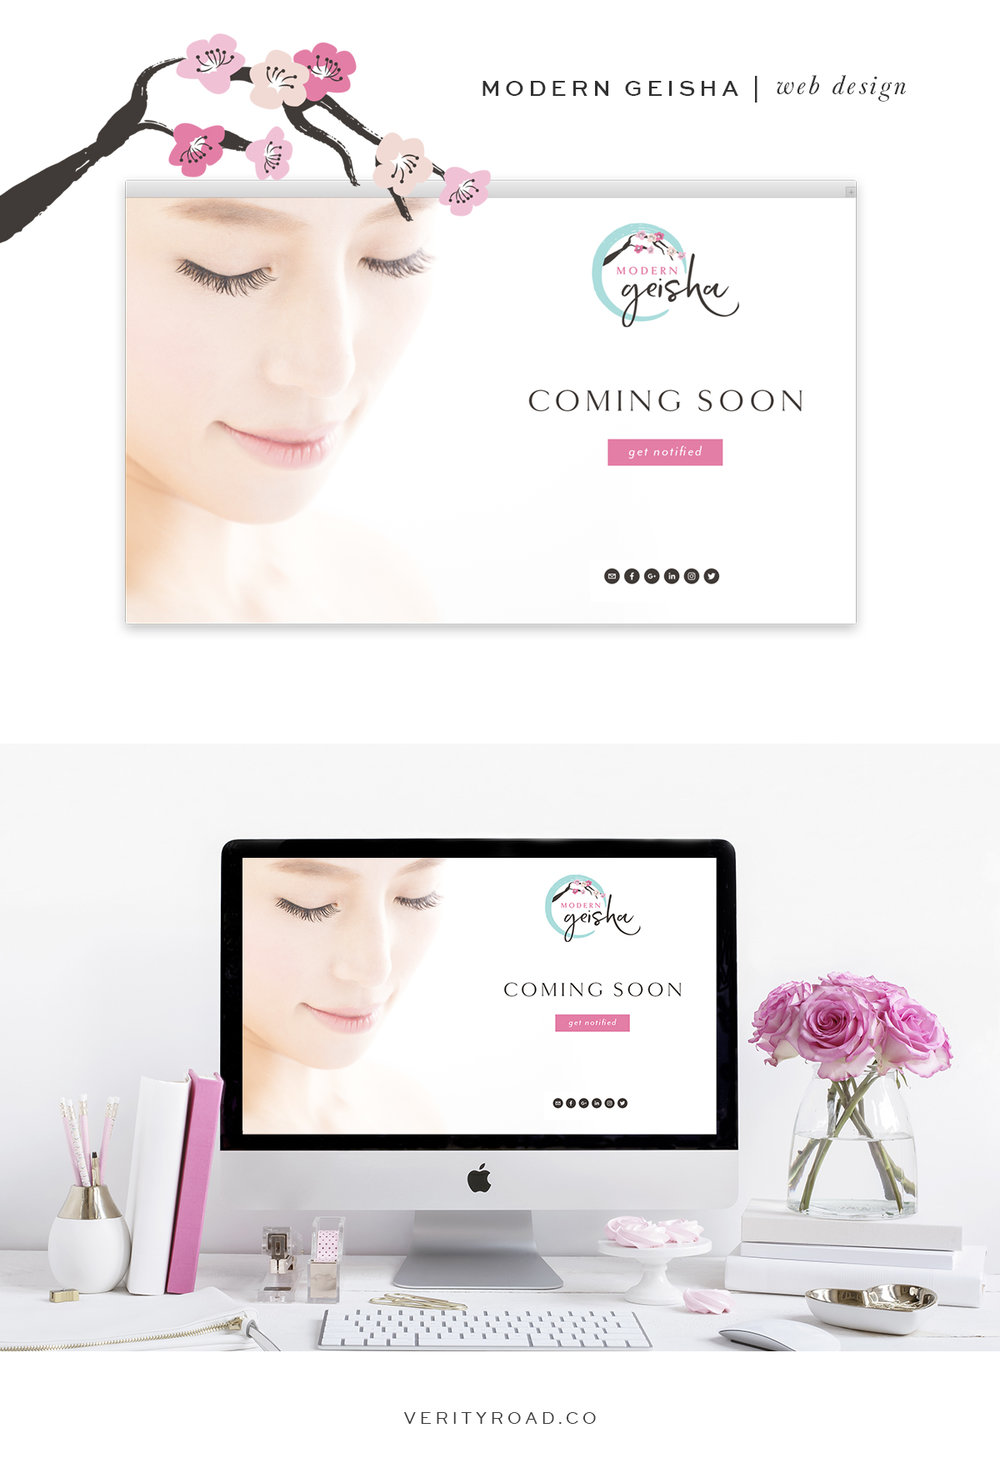 Web design for modern geisha, brand board for modern geisha, luxury branding and web design for female entrepreneurs. Feminine branding, brand style guide, logo design, submark, brand elements, brush script font, serif, brown, pink, blush, tiffany blue color palette, femininity, floral pattern, feminine business. See more for mood board, social media branding, website design, brand style guide.